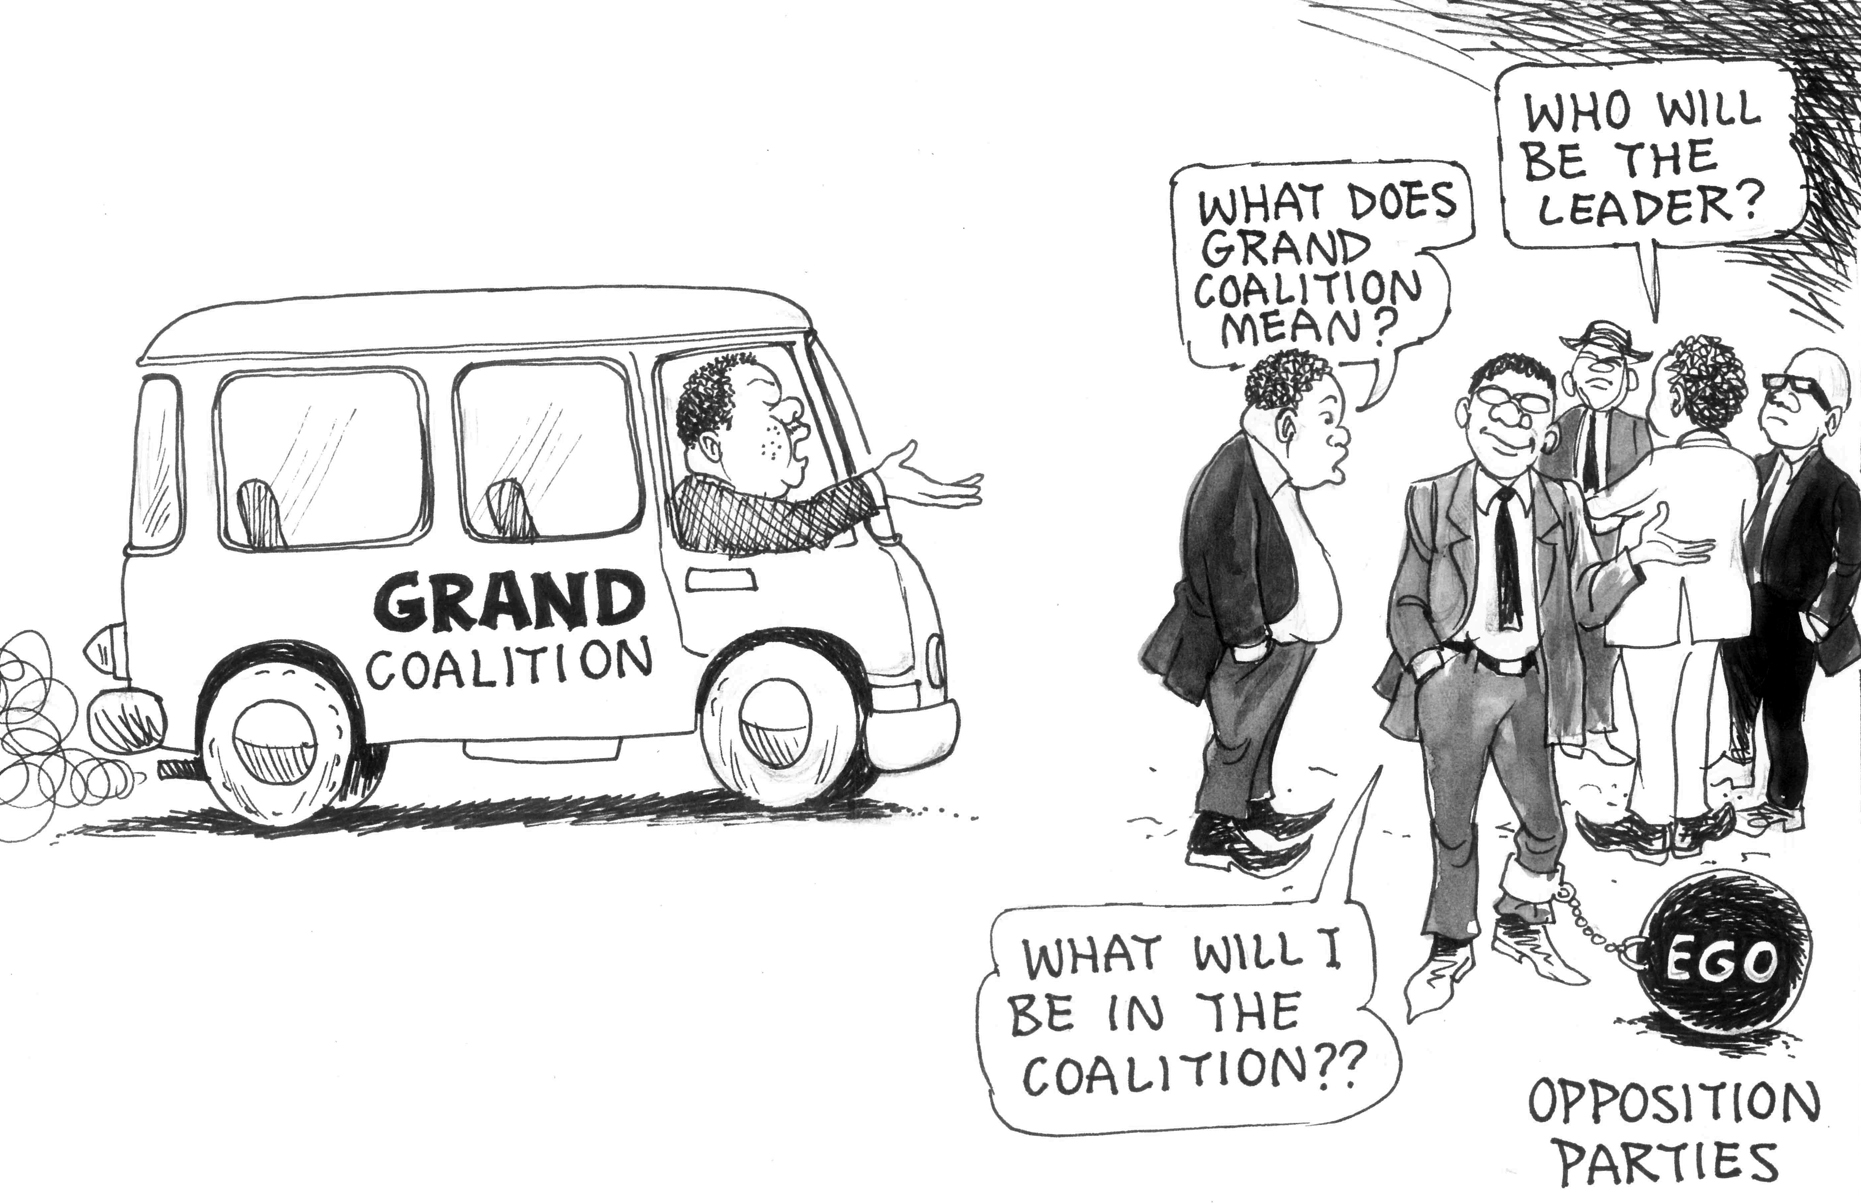 Cartoon credits to:http://www.thezimbabwean.co/2015/07/on-the-brink-of-civil-unrest/